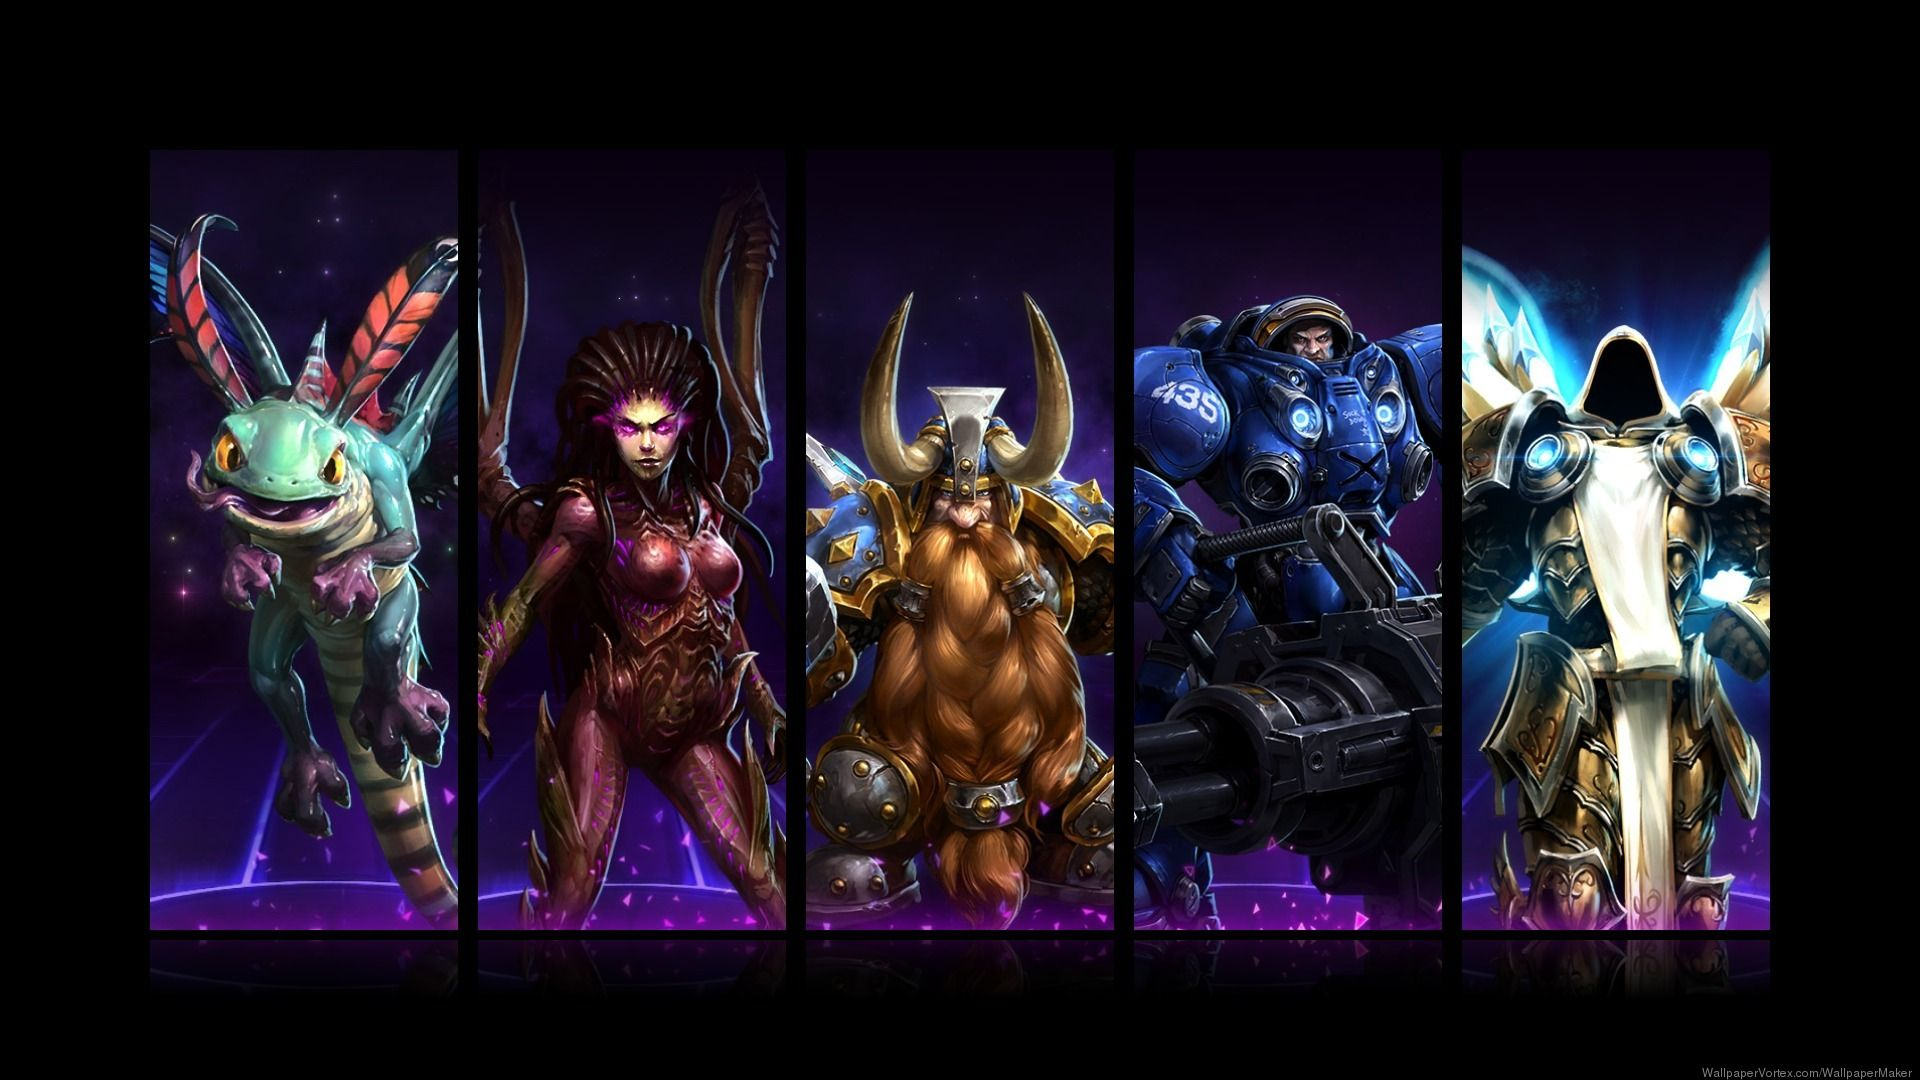 heroes of the storm wallpaper  Heroes of the Storm wallpaper | Heroes of the Storm | Pinterest ...